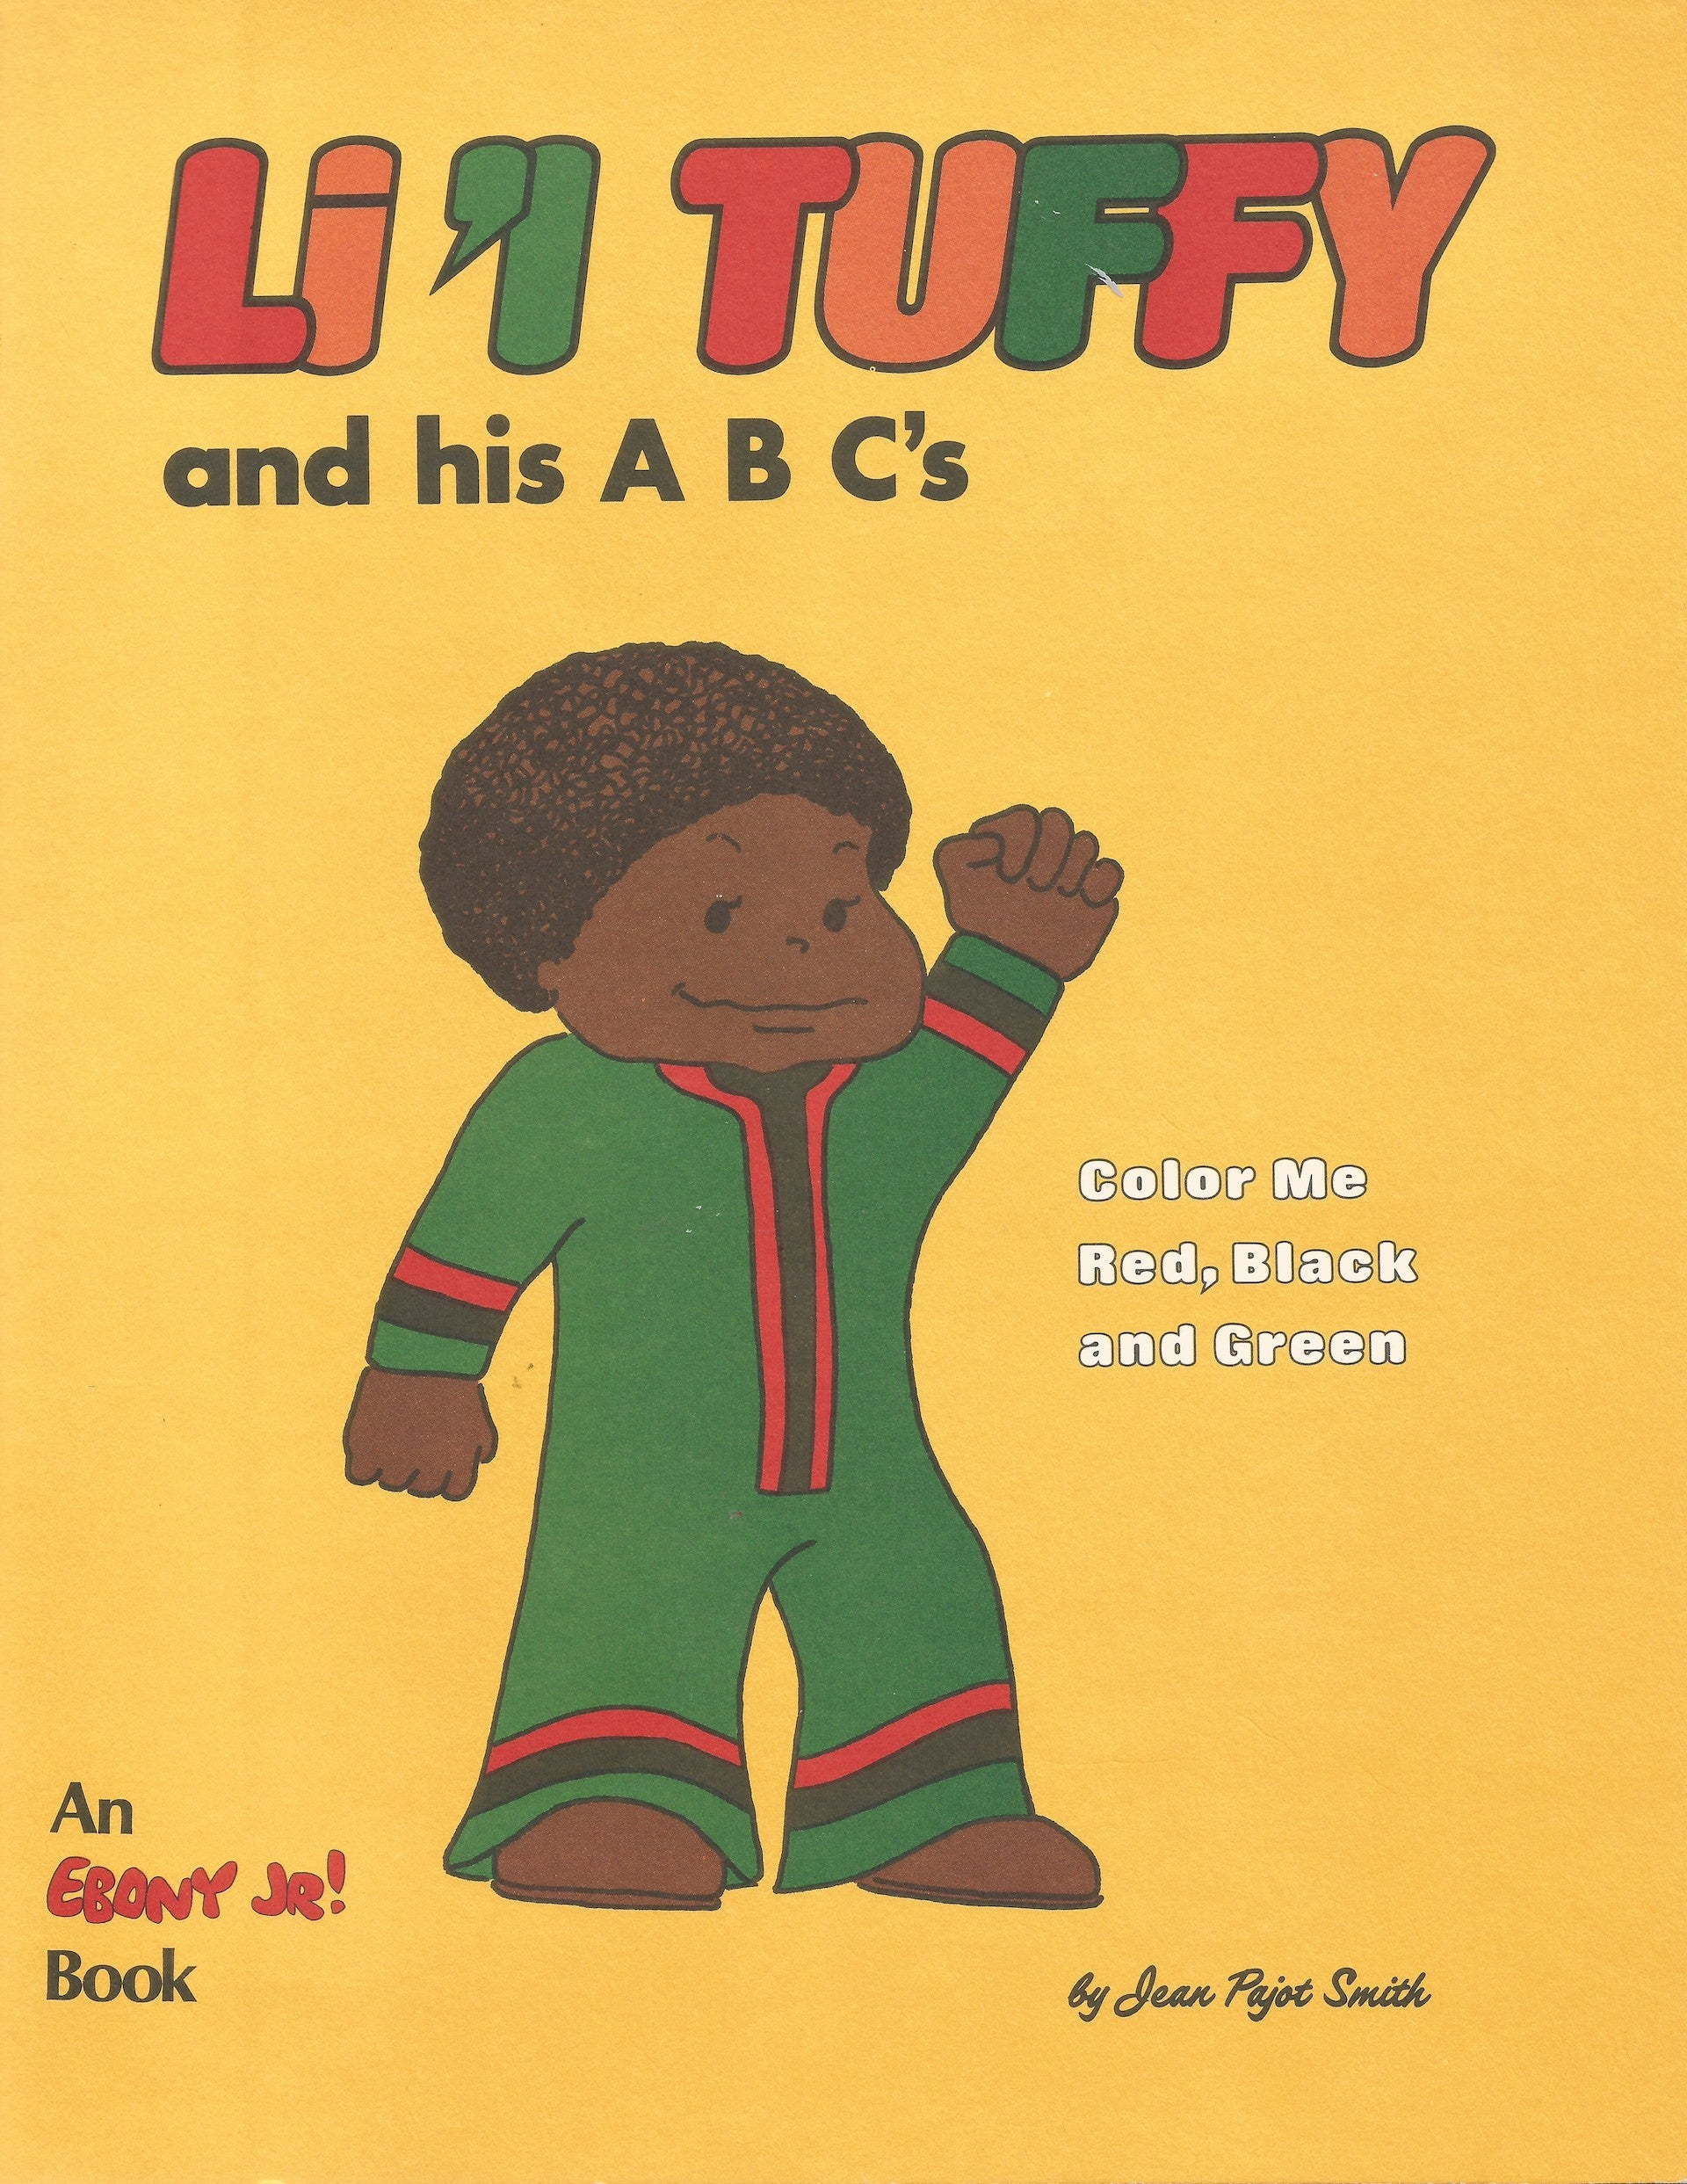 Li'l Tuffy and his ABC's coloring book, An Ebony Jr.! Book, Johnson Publishing Co., 1971. The character Li'l Tuffy is the cartoon amalgamation of Malcolm Mobutu Smith and his brother Jason, created and drawn by the artist's mother, Jean Pajot Forrester (neé Smith). Copyright © Jean Pajot Forrester